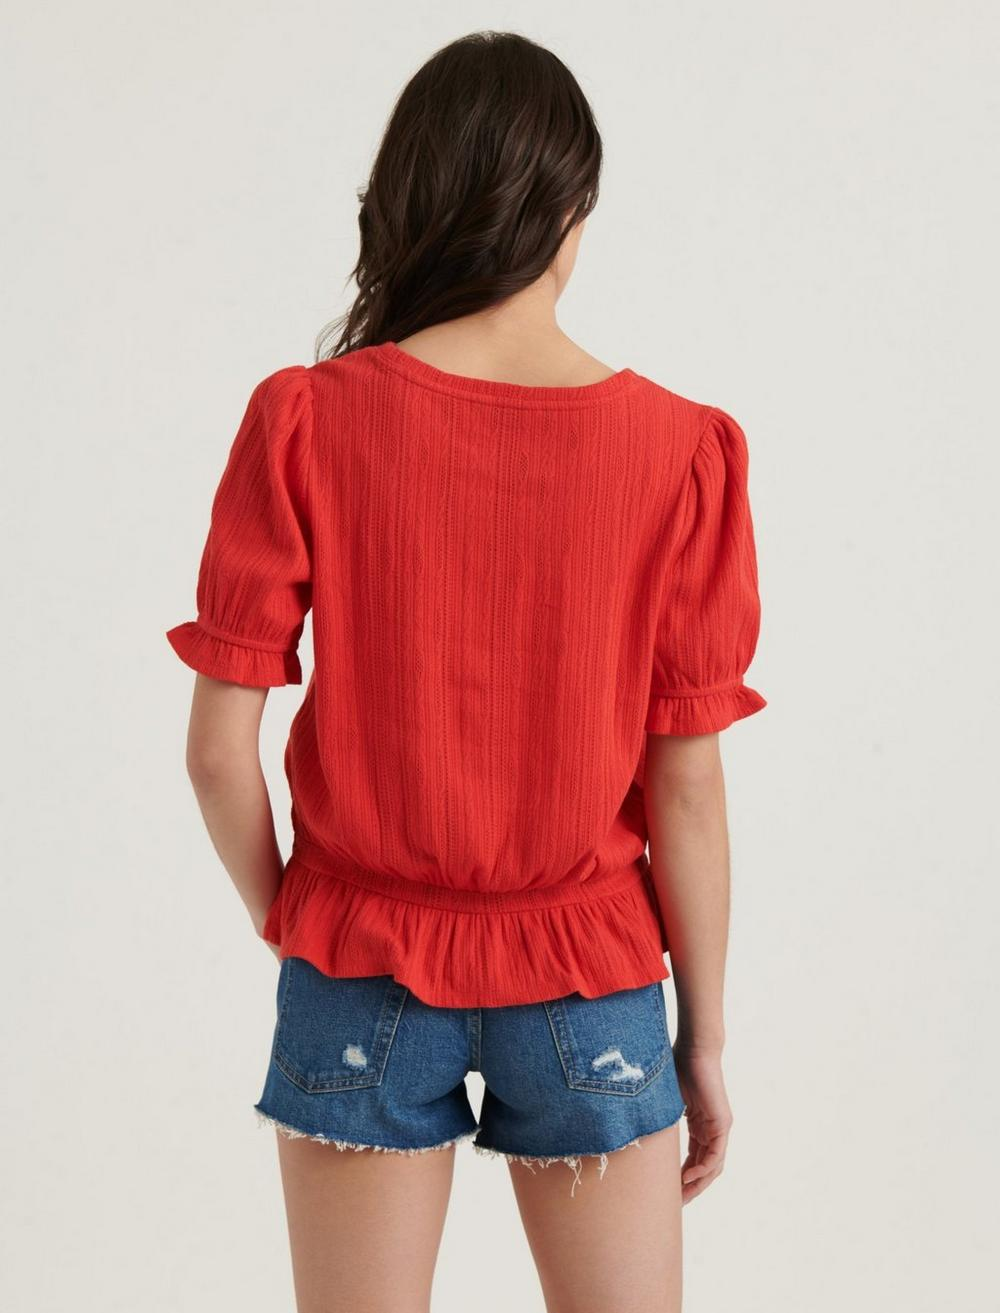 POINTELLE KNIT BANDED TOP, image 4